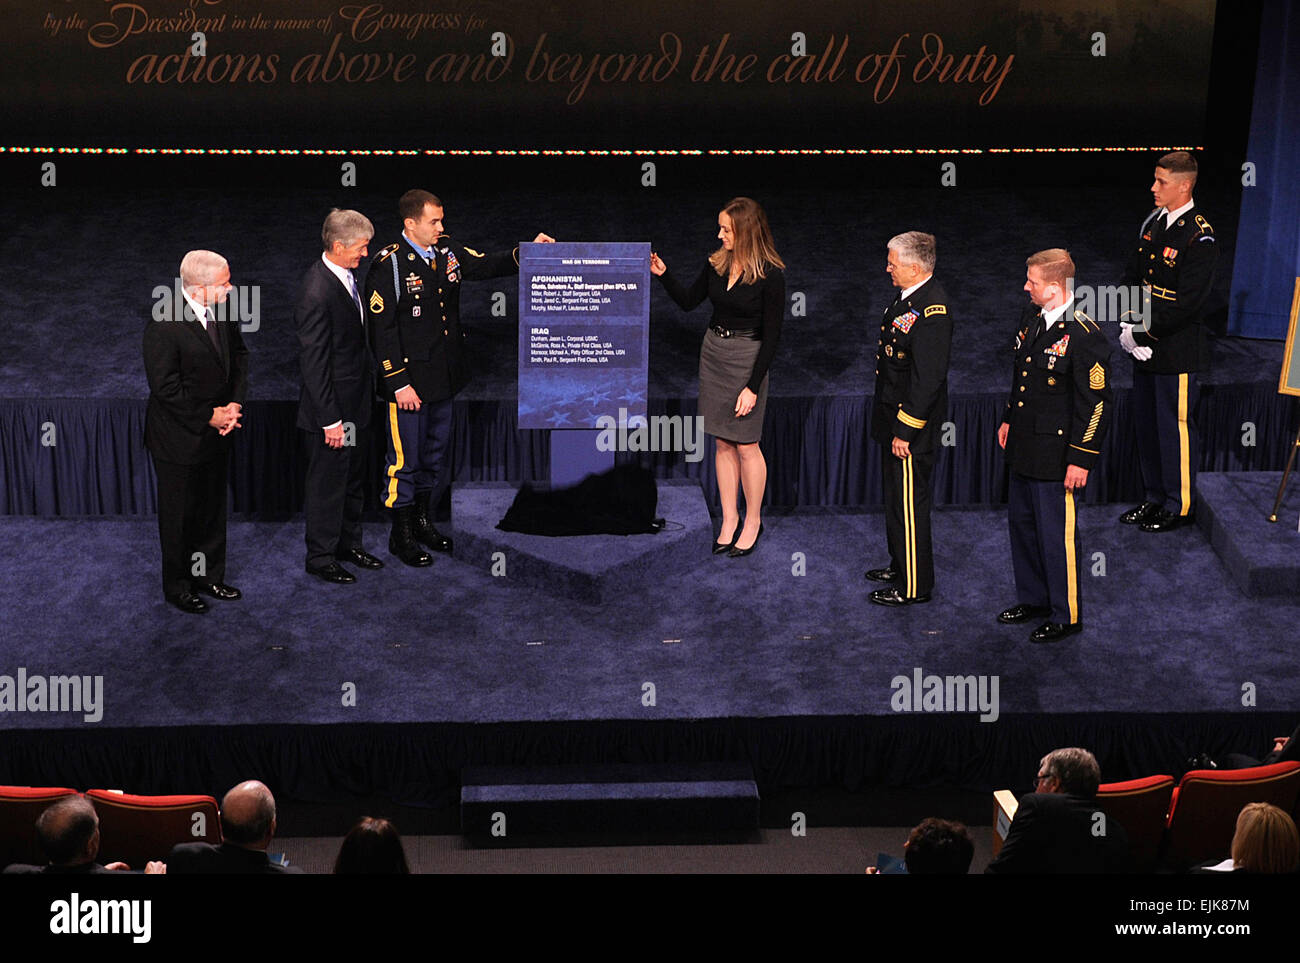 Medal of Honor recipient Staff Sergeant Salvatore A. Giunta and his wife Jennifer, unveil the Hall of Heroes Plaque - Stock Image